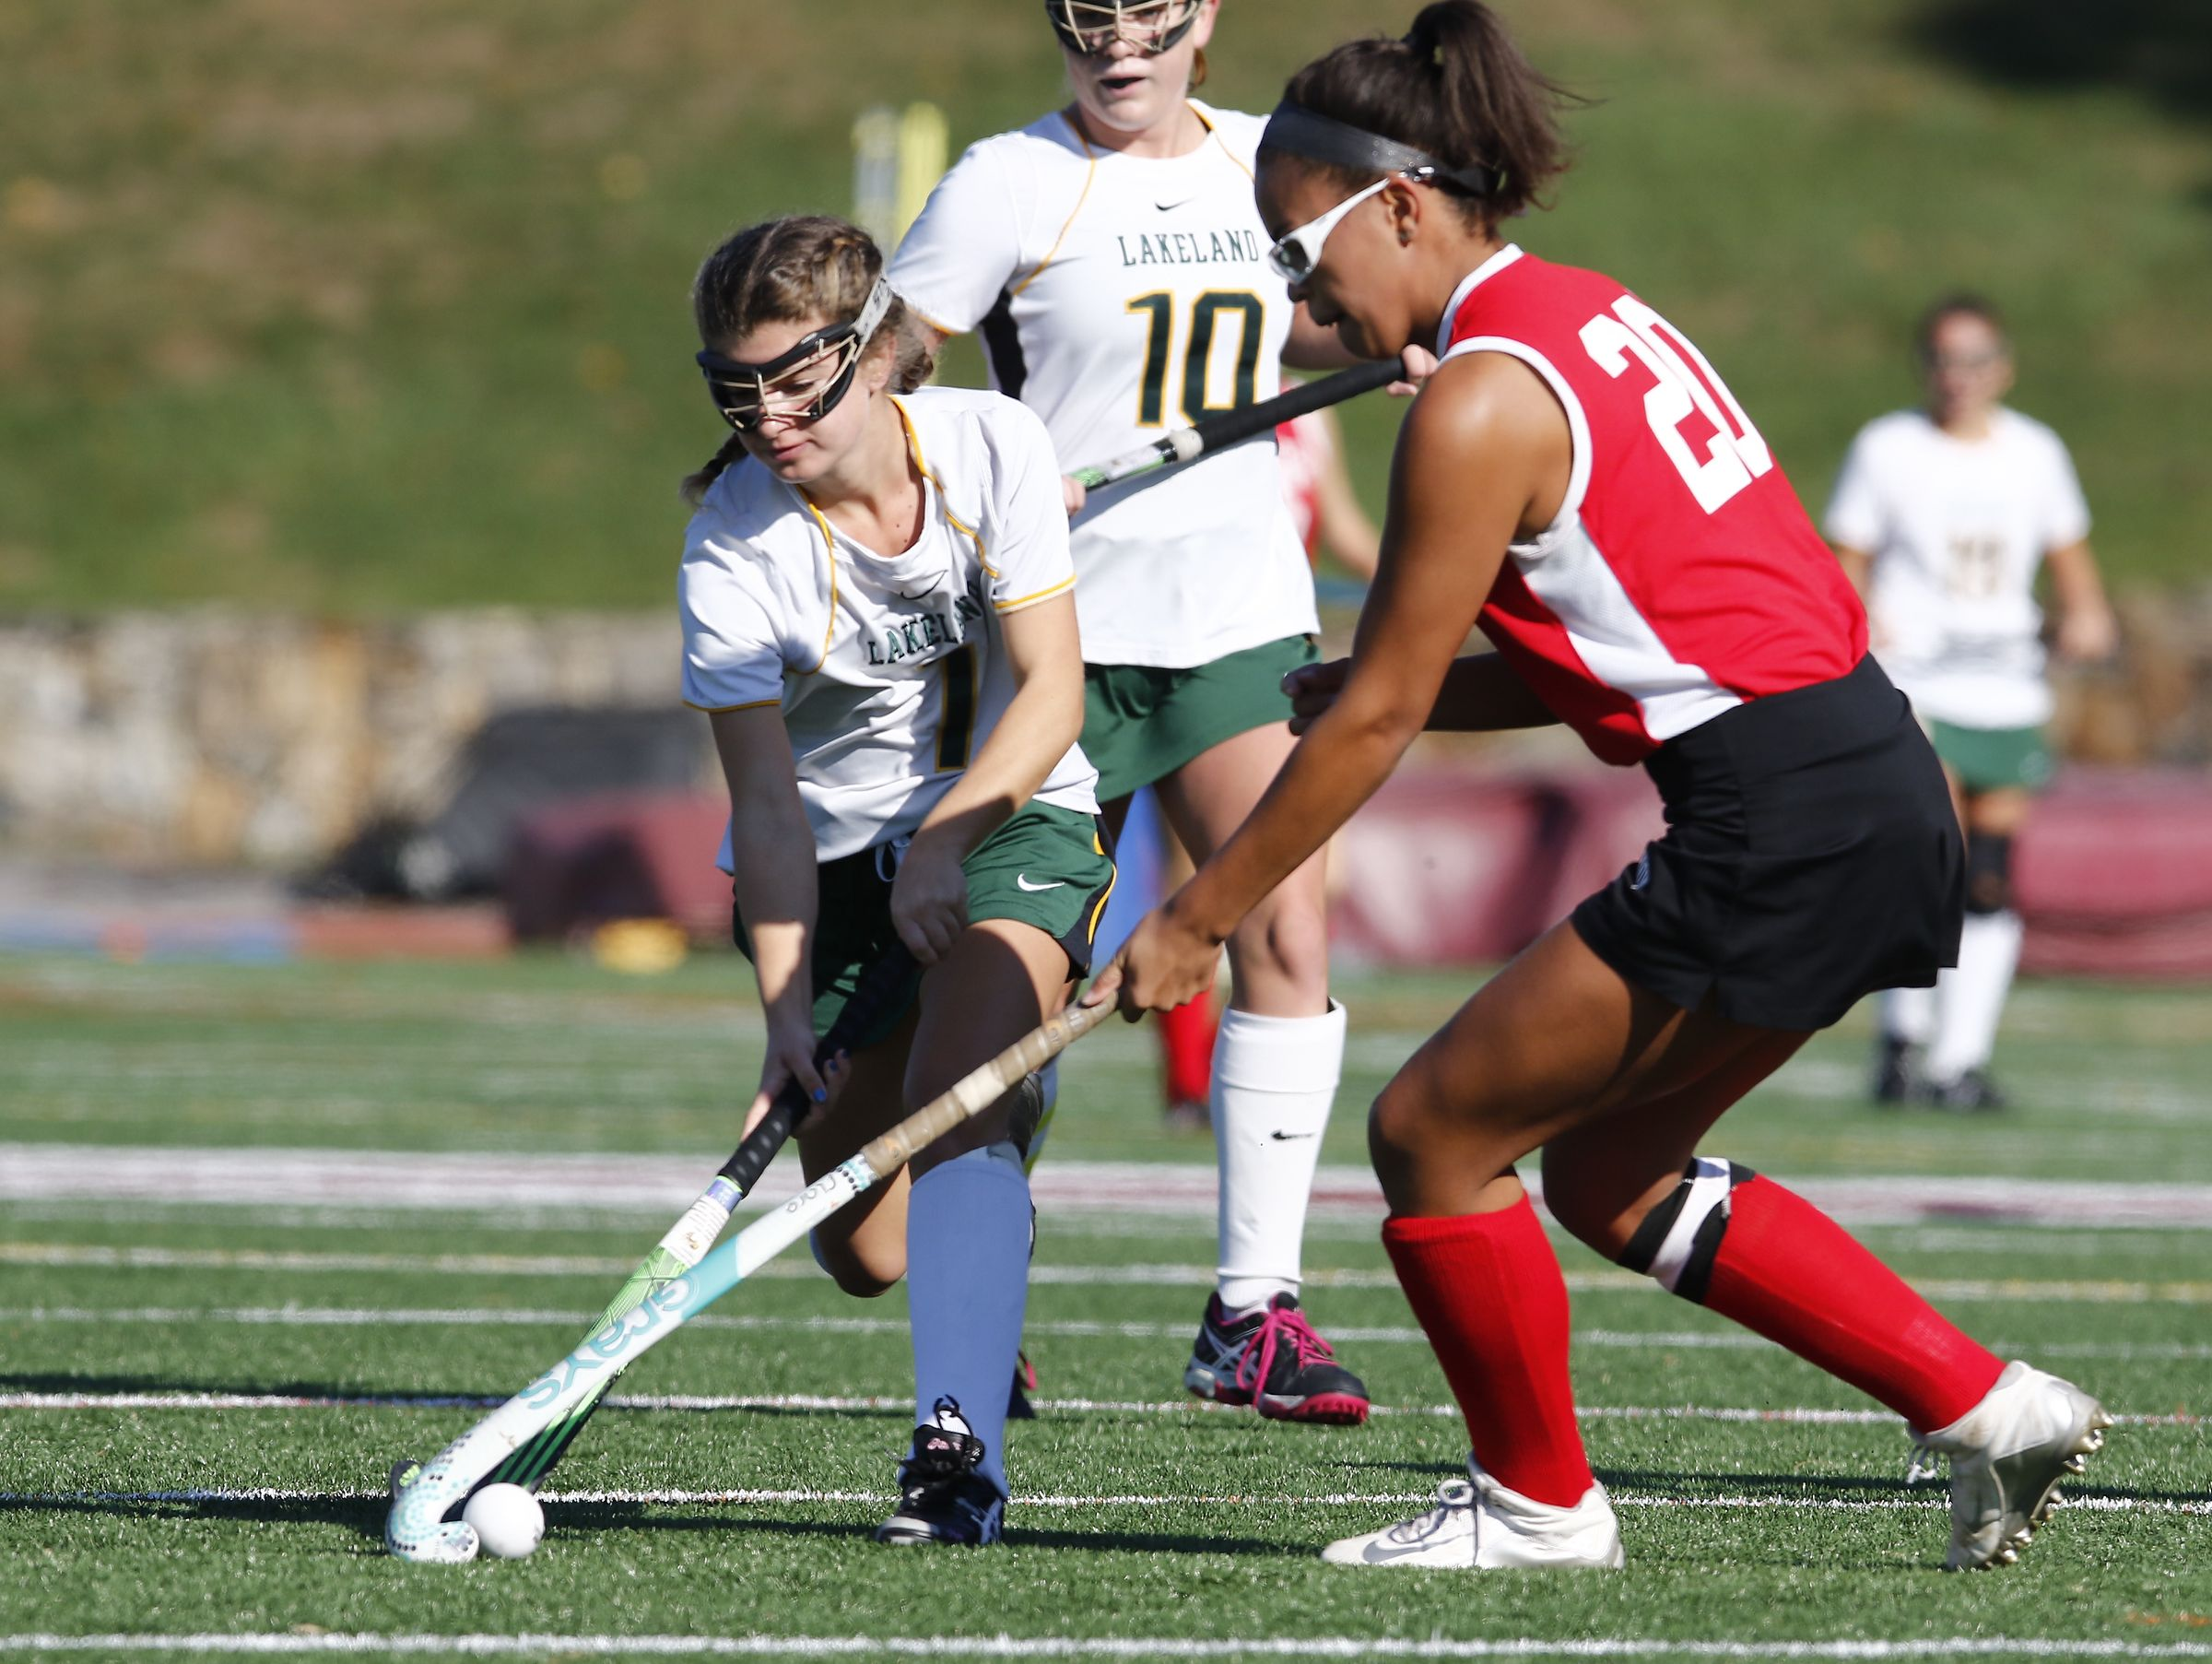 Lakeland's Cali Cortese (1) works the ball during their 8-0 win over Red Hook in the Class B regional championship field hockey game at Valhalla High School on Saturday, November 5, 2016.